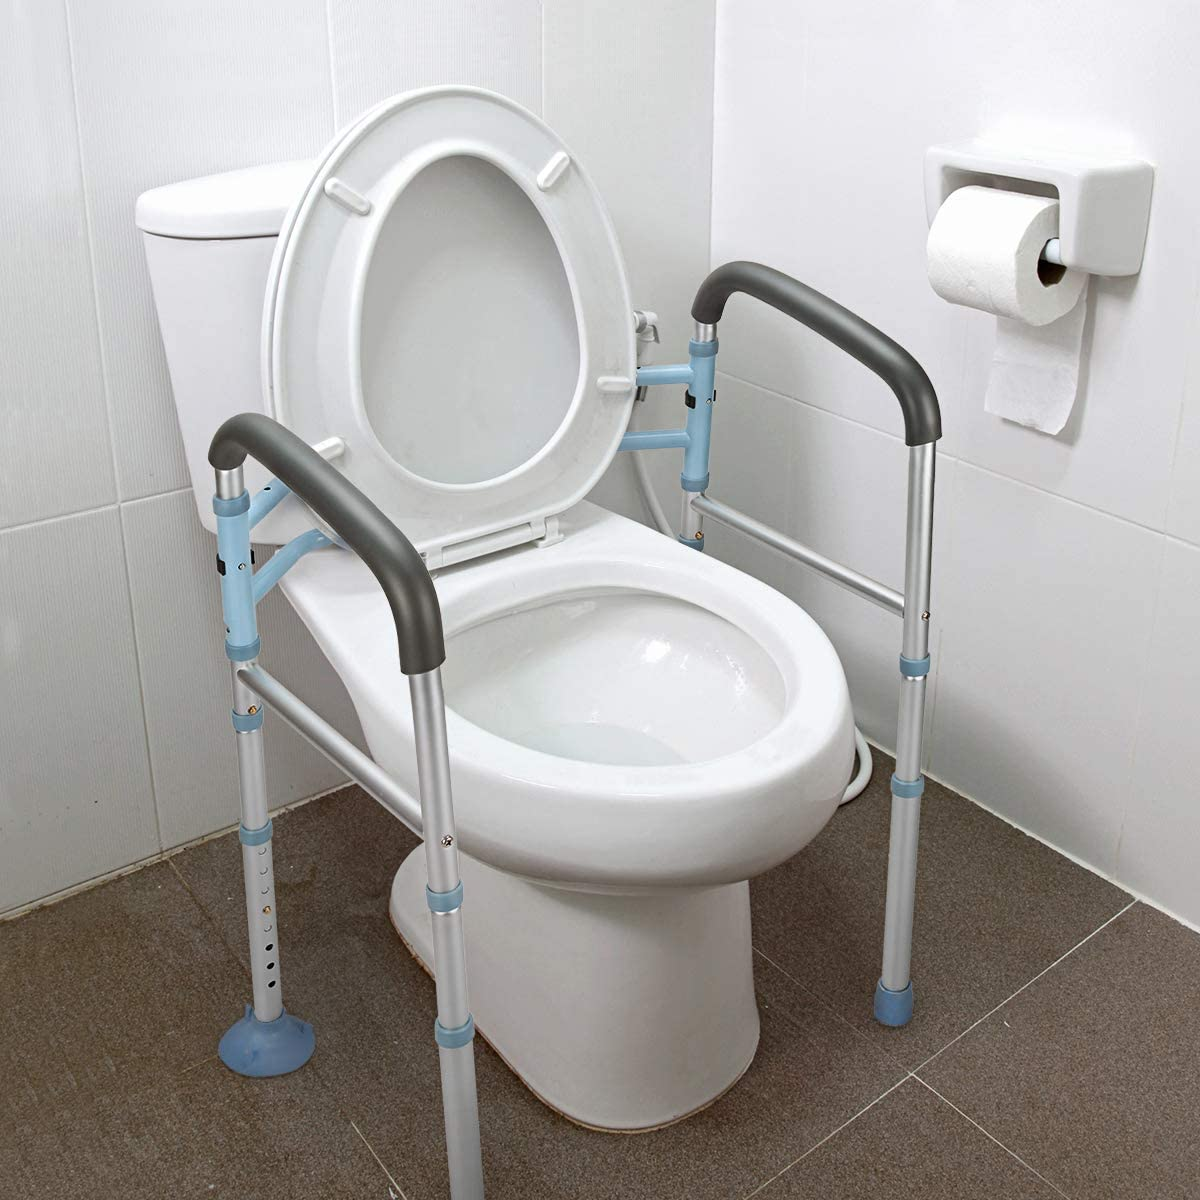 OasisSpace Stand Alone Toilet Safety Rail - Heavy Duty Medical Toilet Safety Frame for Elderly, Handicap and Disabled - Adjustable Bathroom Toilet Handrails Grab Bar, Fit Any Toilet: Health & Personal Care